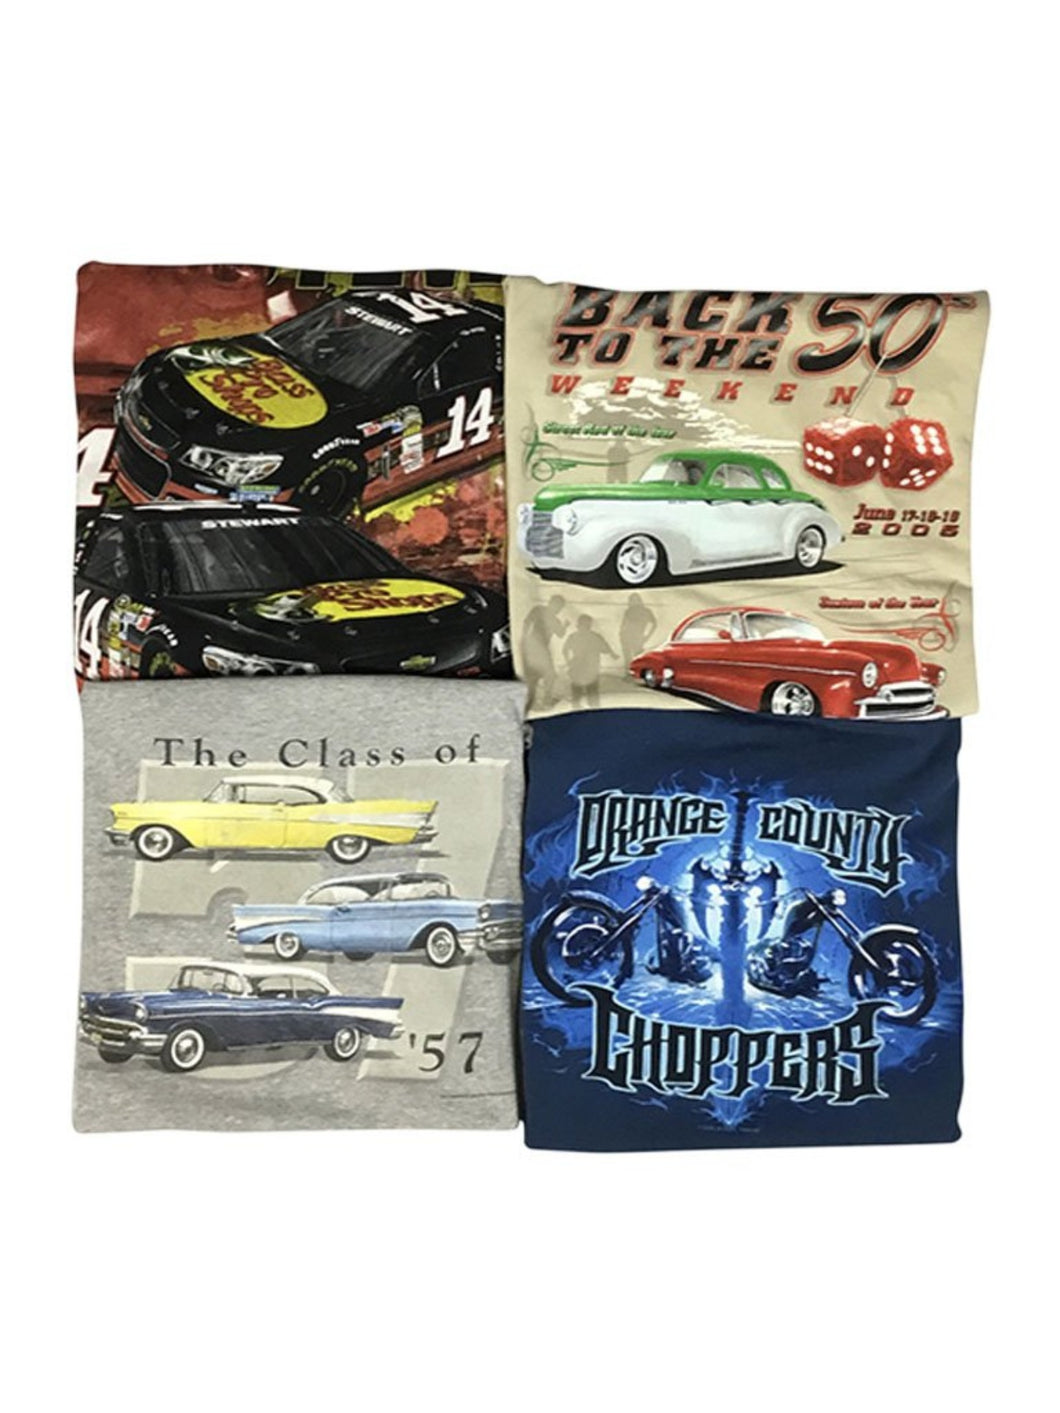 An image of three different NASCAR/moto-themed wholesale vintage t-shirts